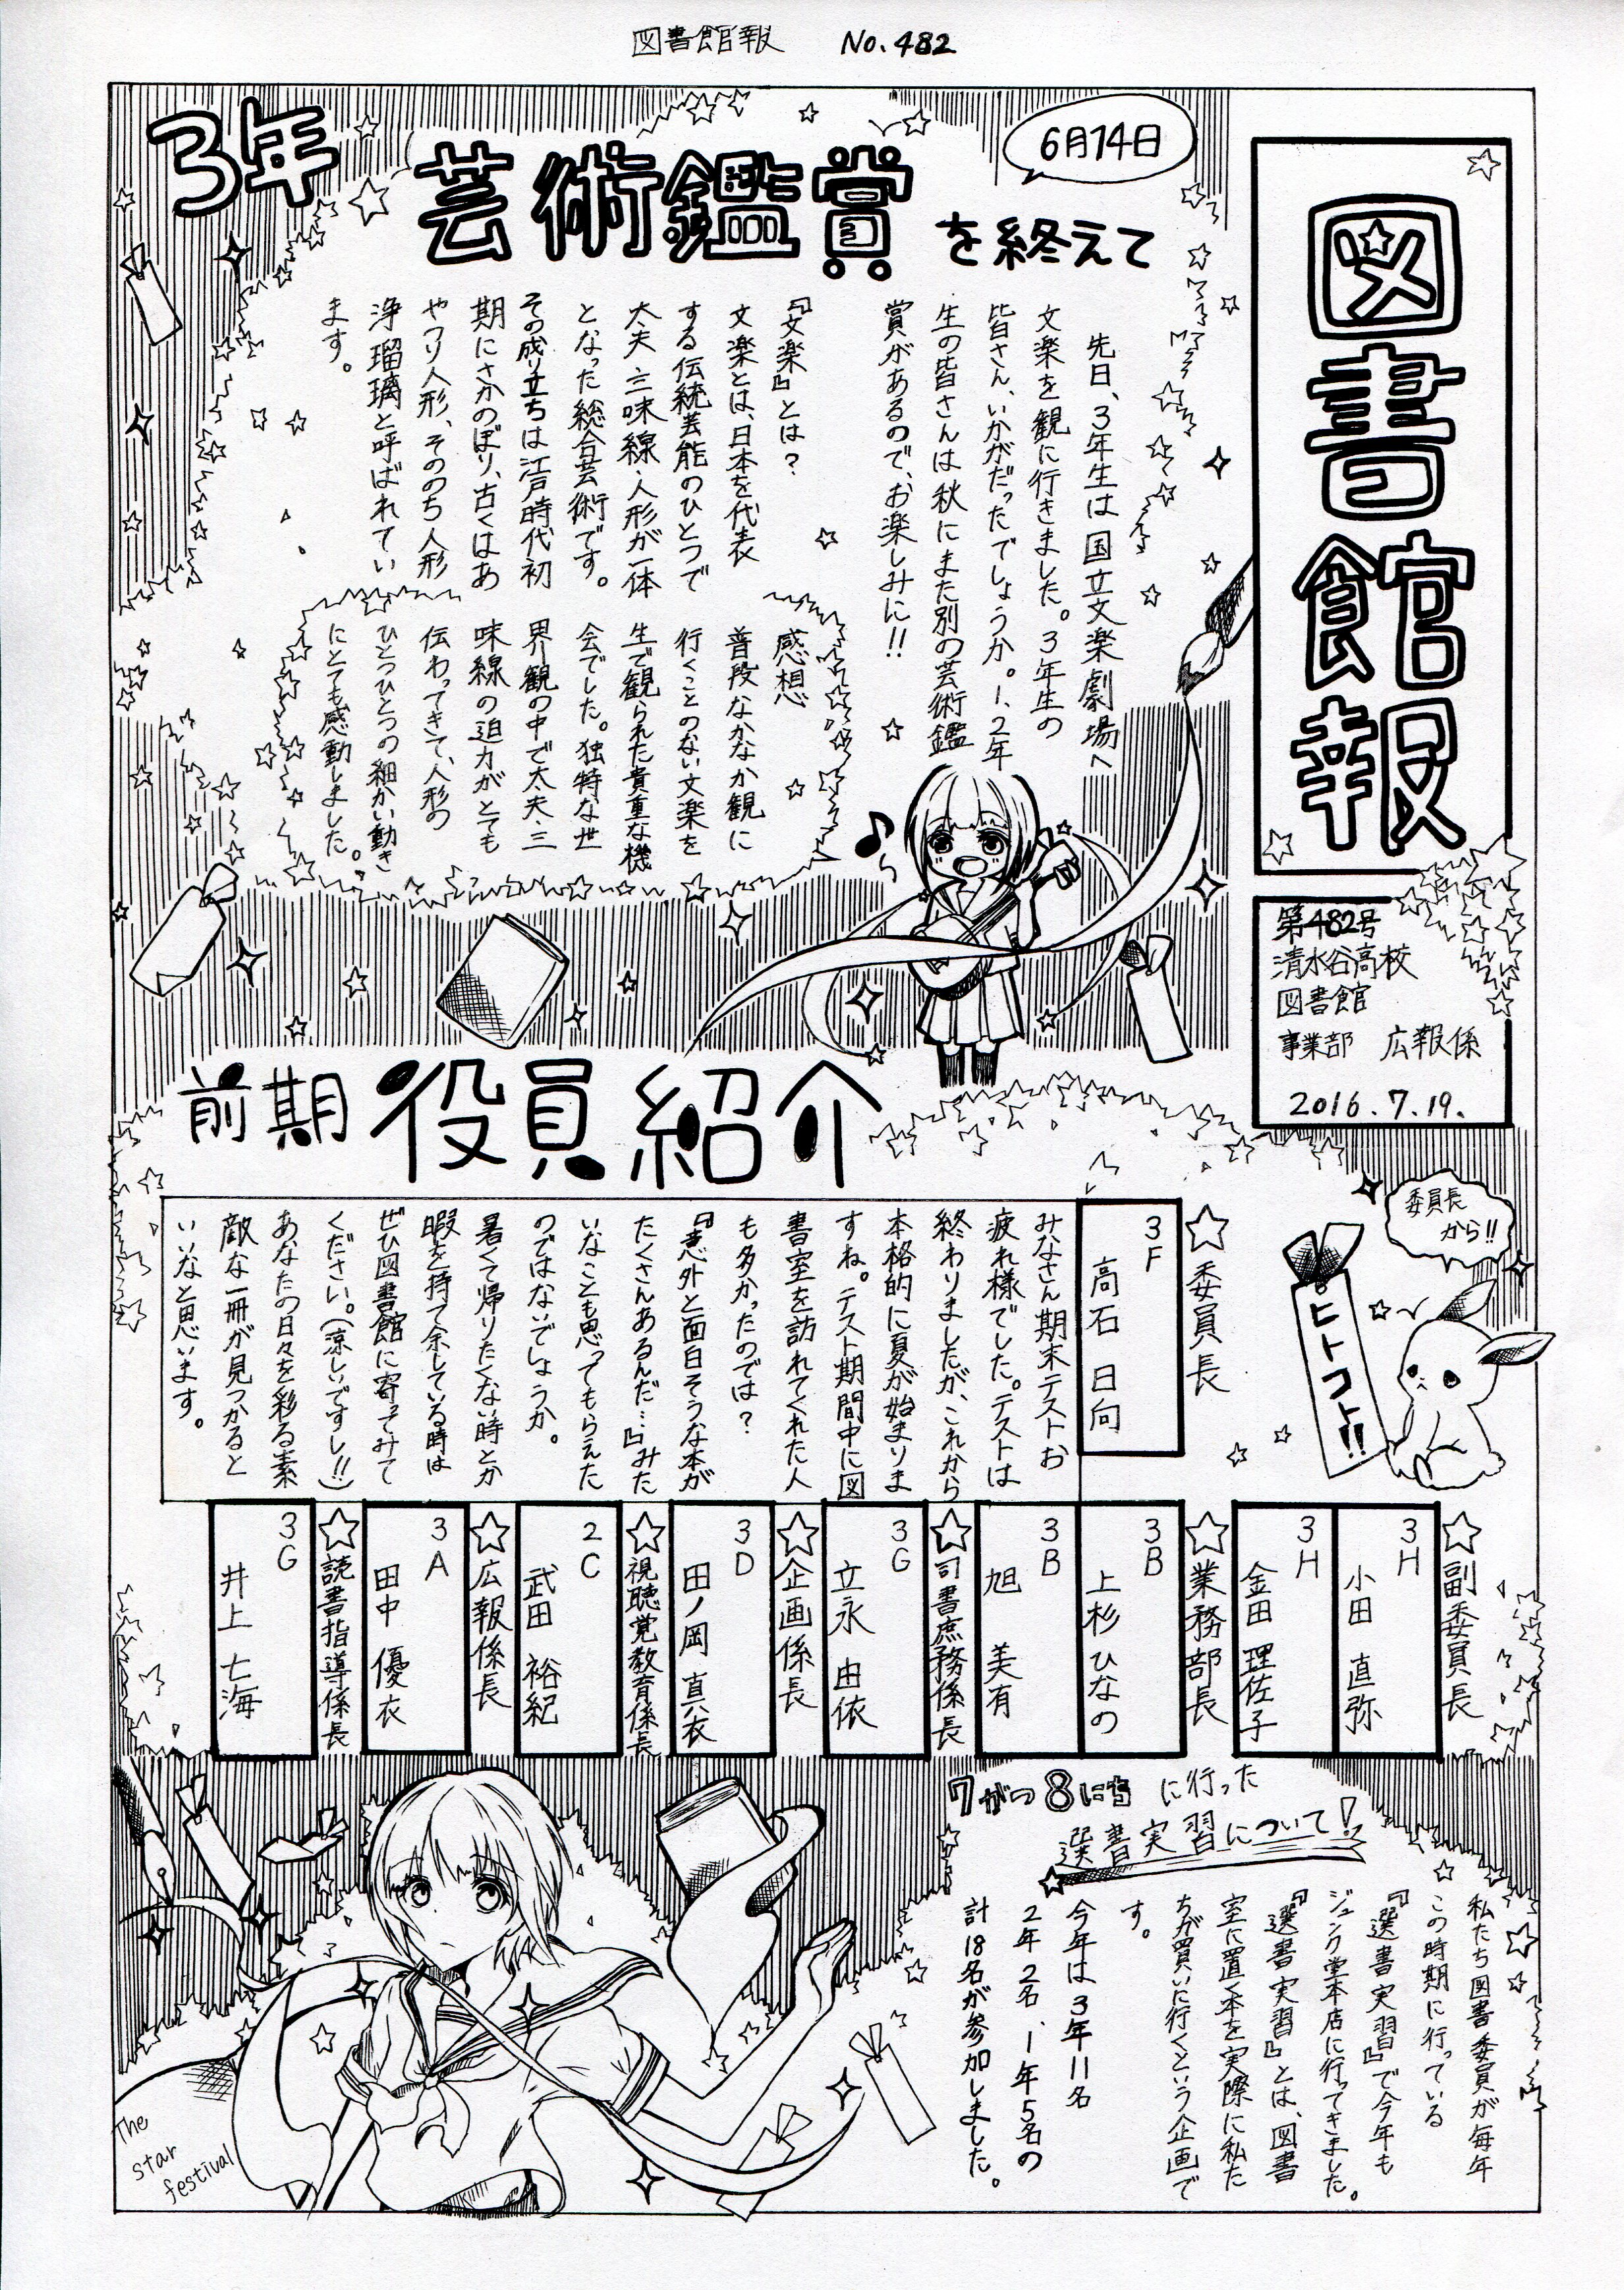 letter about school life 図書館だより 19588